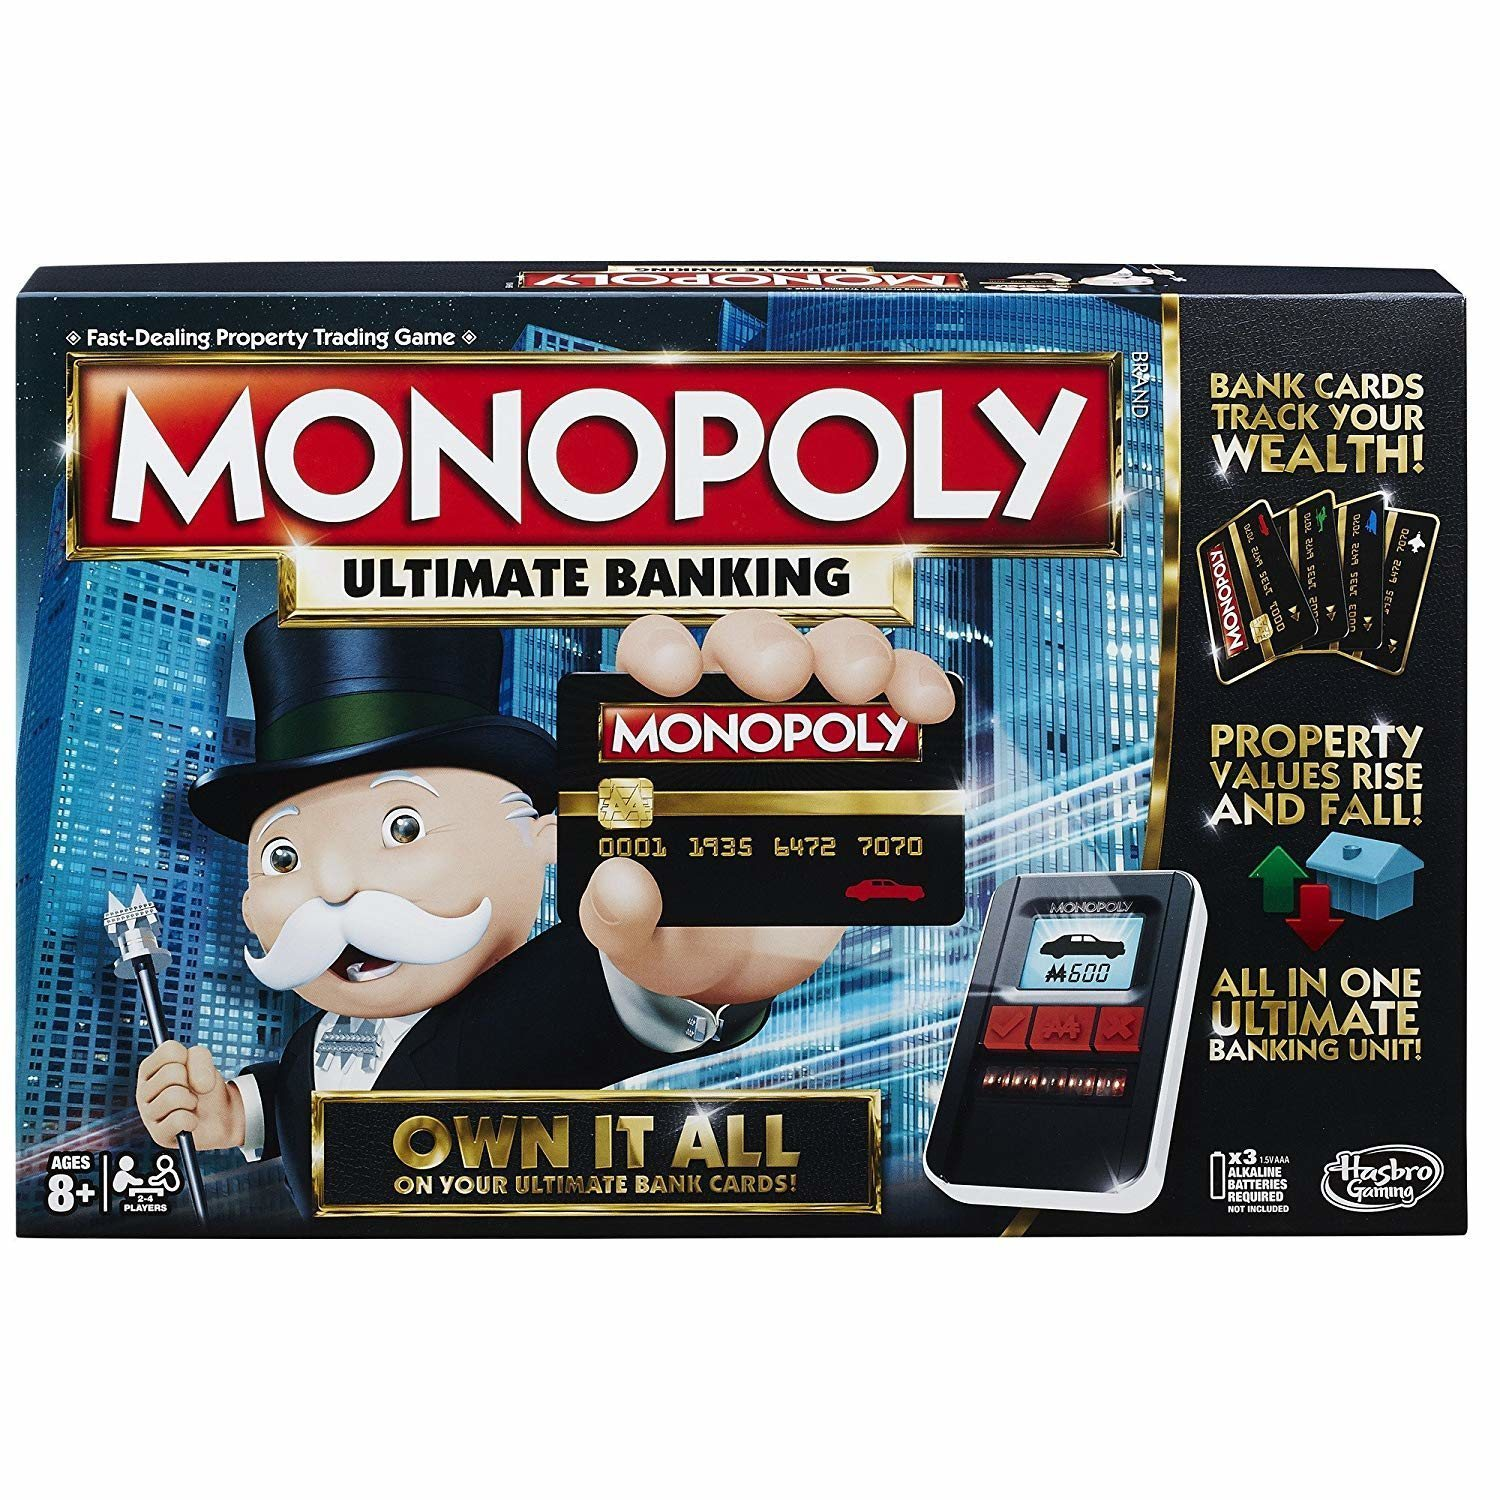 Monopoly: Ultimate Banking.